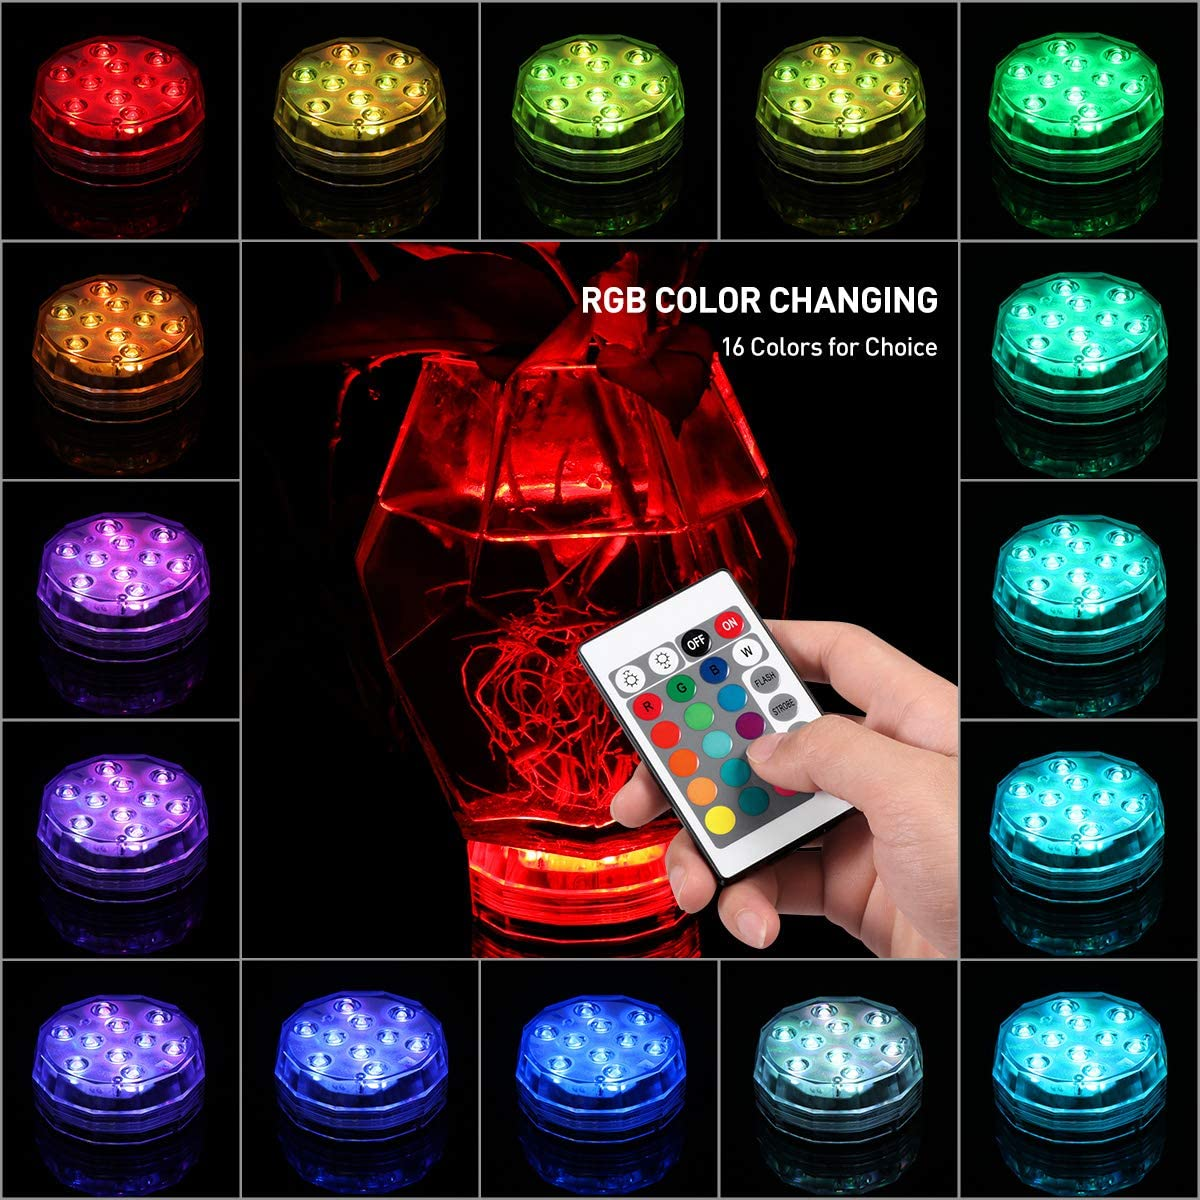 RGB Underwater LED Lights Submersible Multicolor for bar pool lawn 12//24pcs USA